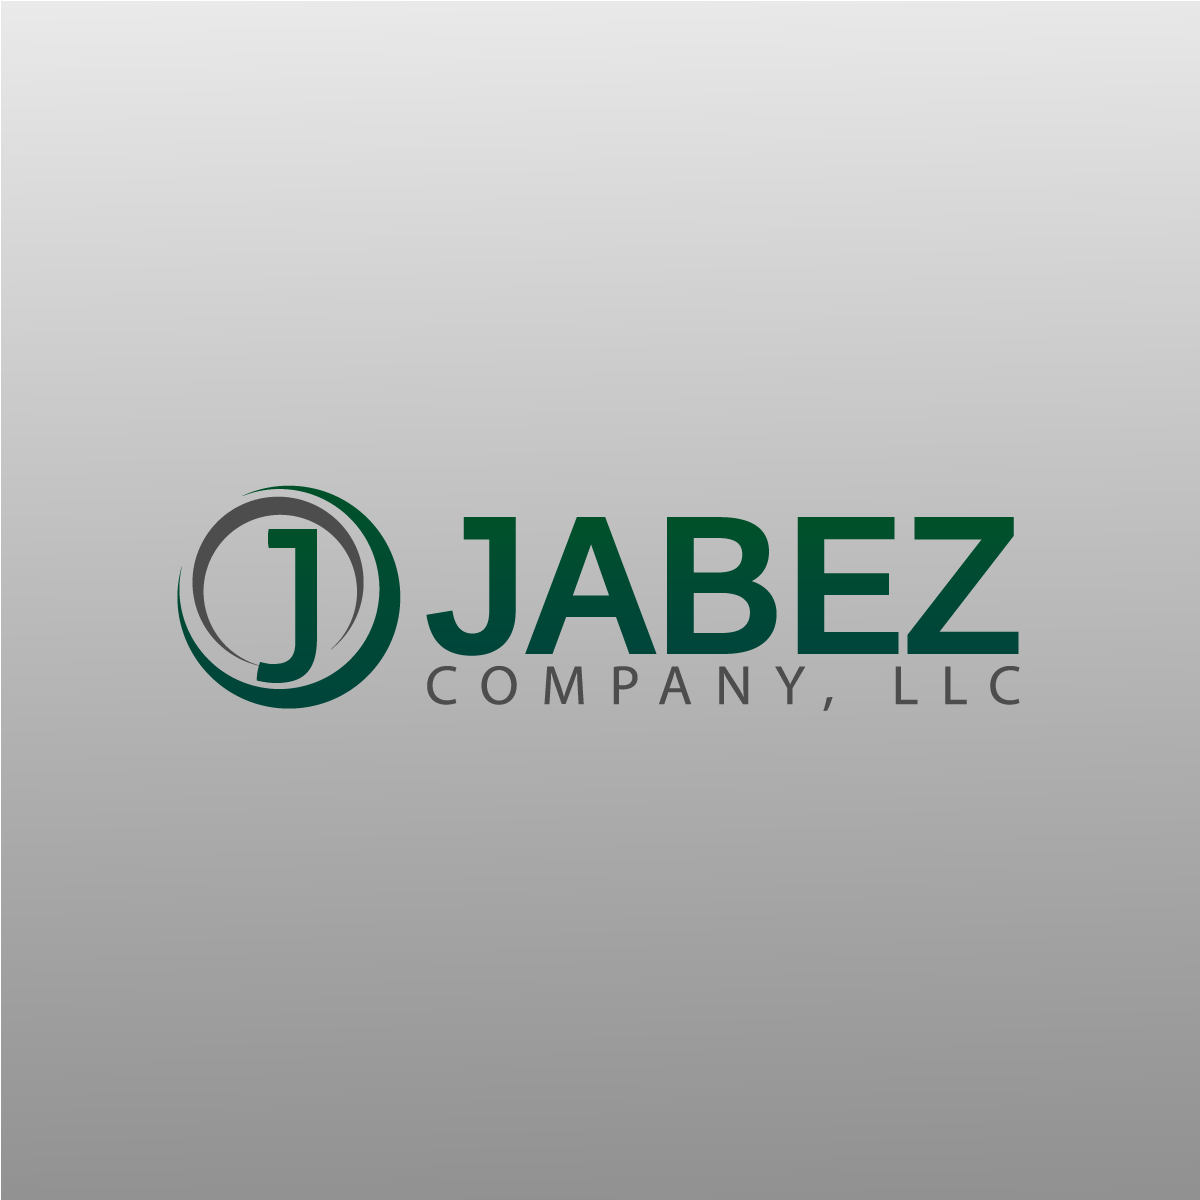 Logo Design by rockin - Entry No. 22 in the Logo Design Contest New Logo Design for Jabez Compnay, LLC.